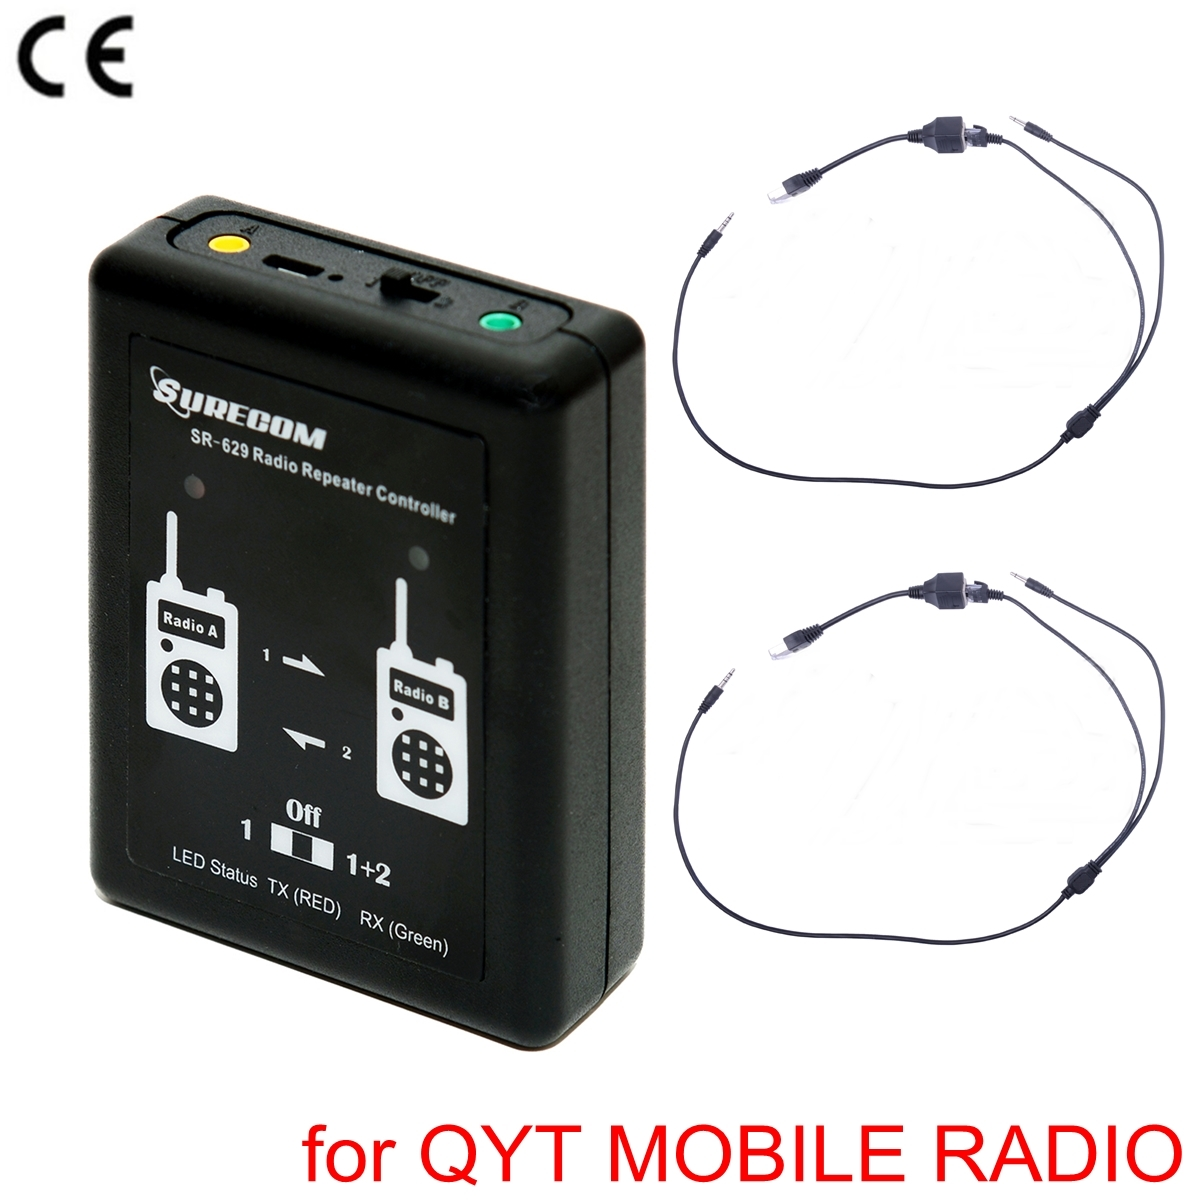 SURECOM SR-629 Duplex Repeater Controller with QYT KT-UV980 Mobile Radio CABLE